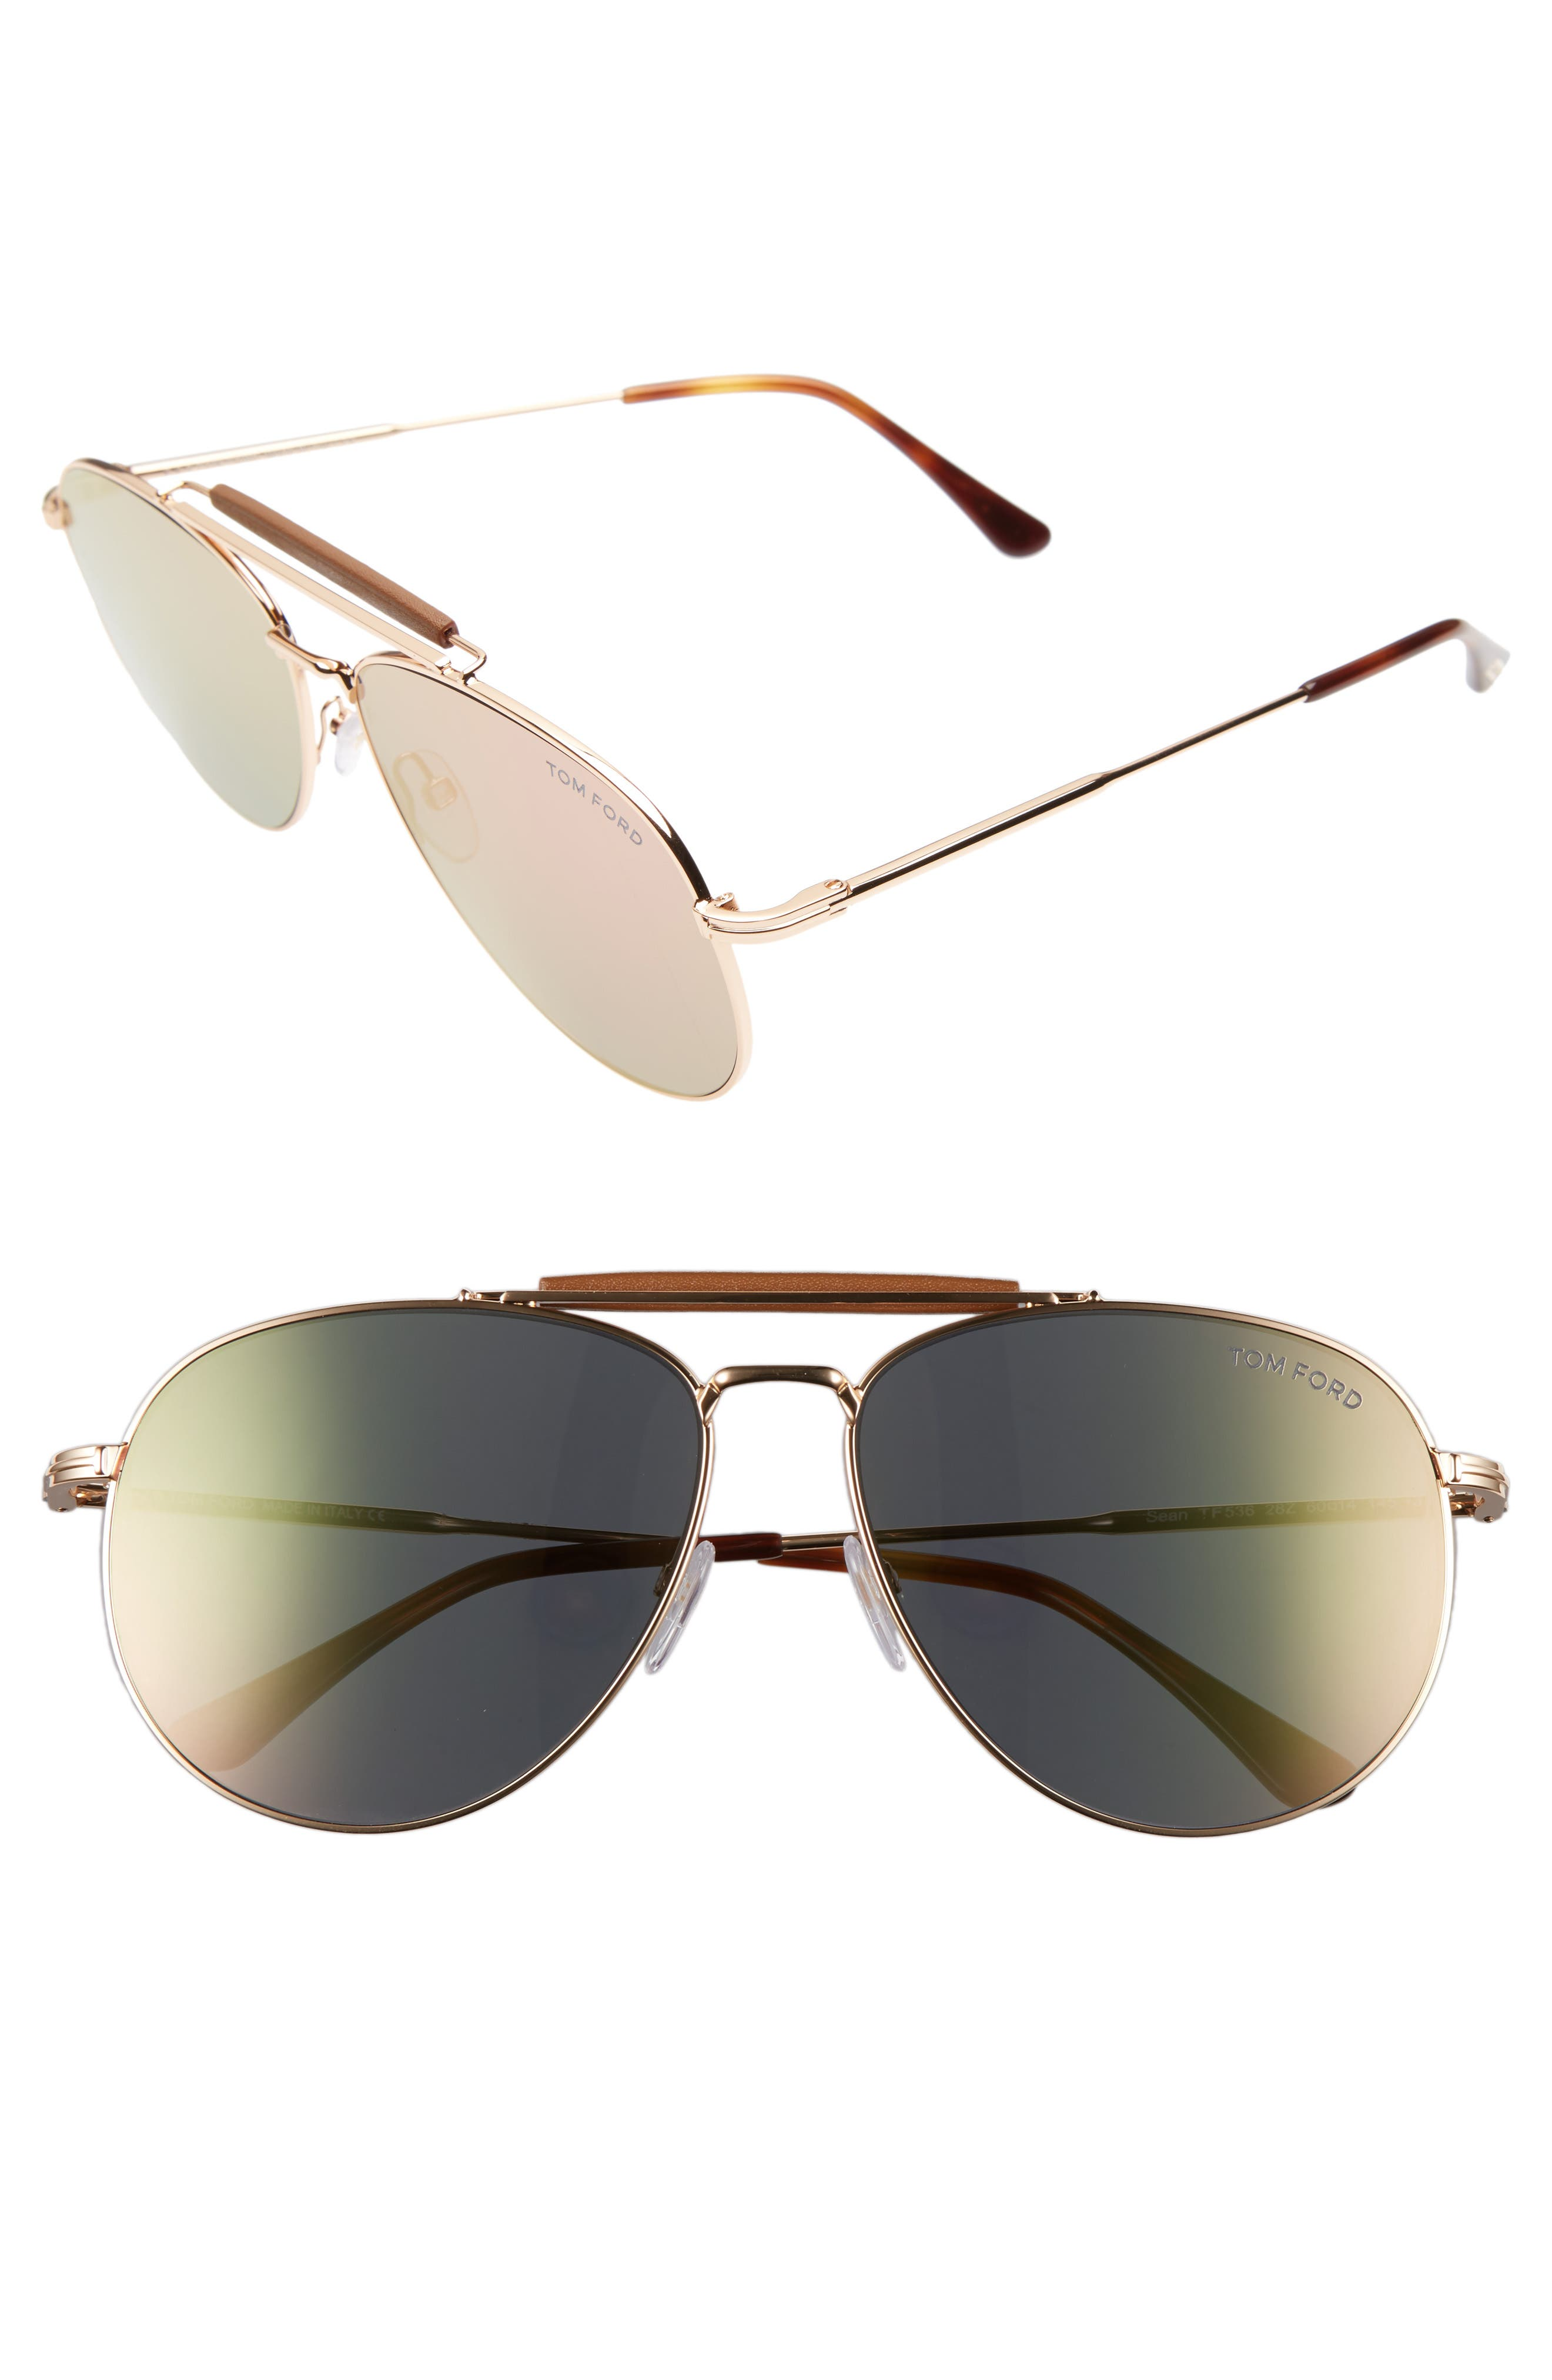 Main Image - Tom Ford Sean 60mm Aviator Sunglasses